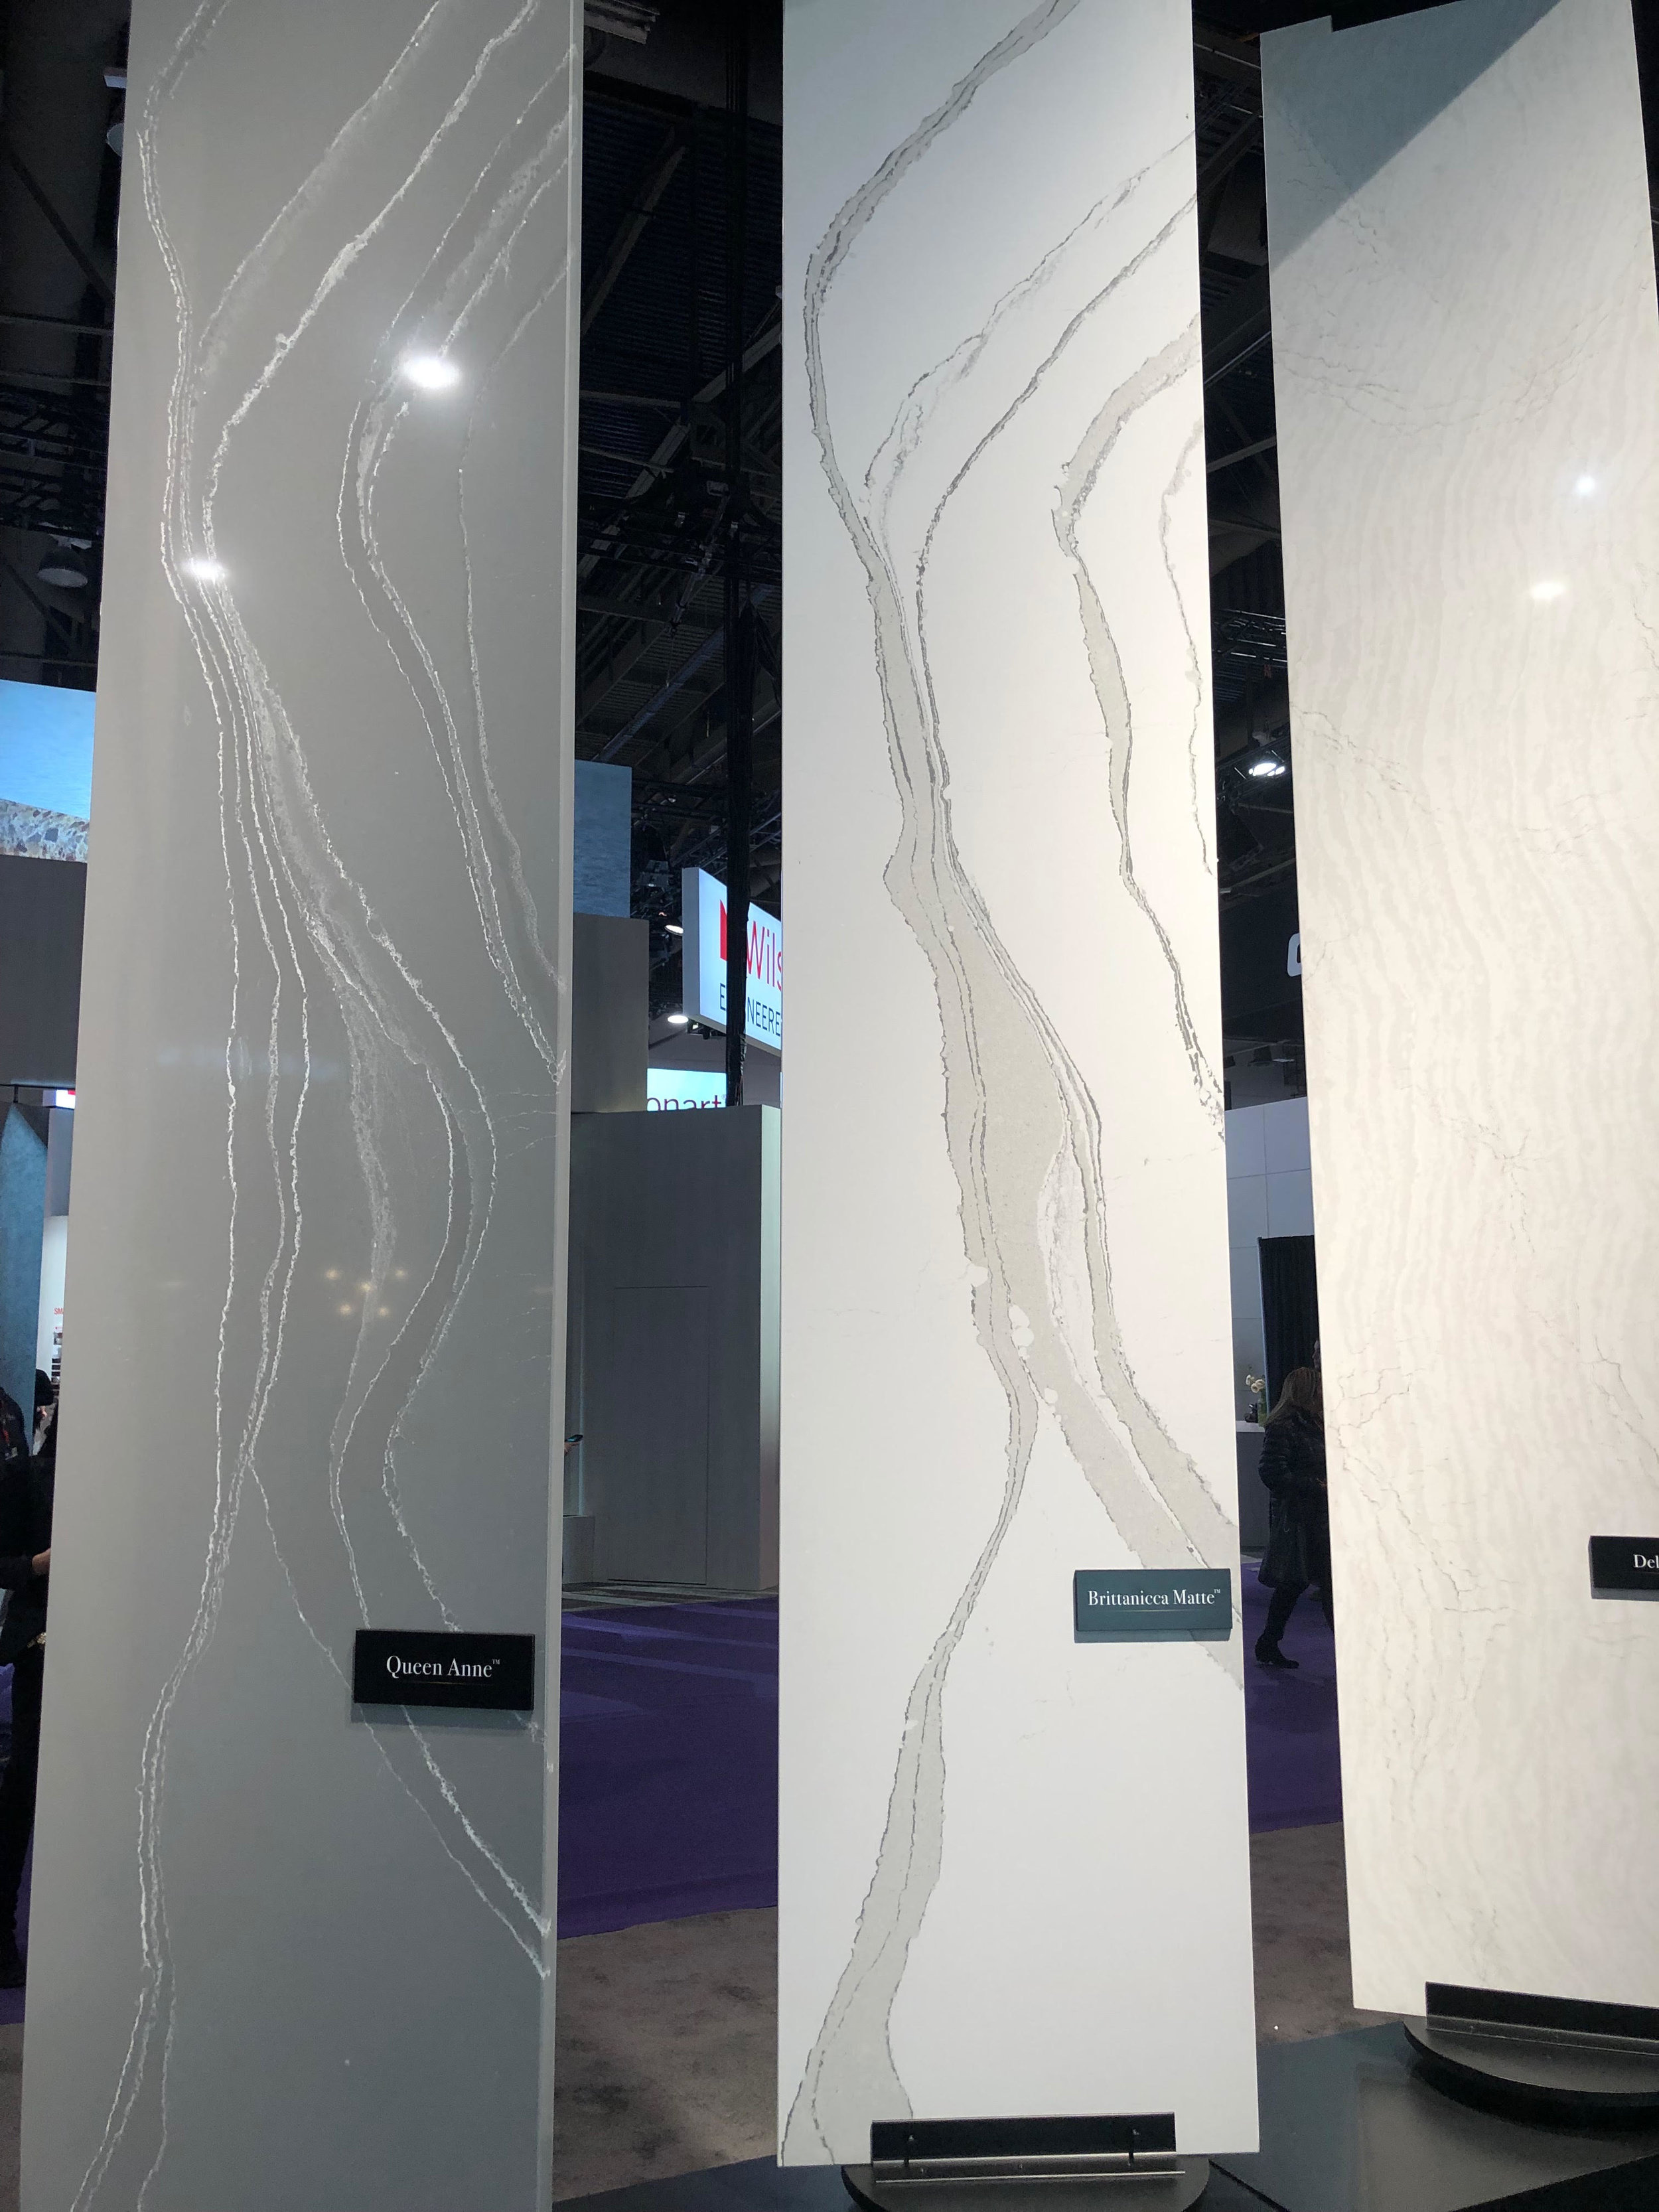 Countertops - Quartz, Marble, Granite and so much more. We carry all major brands!